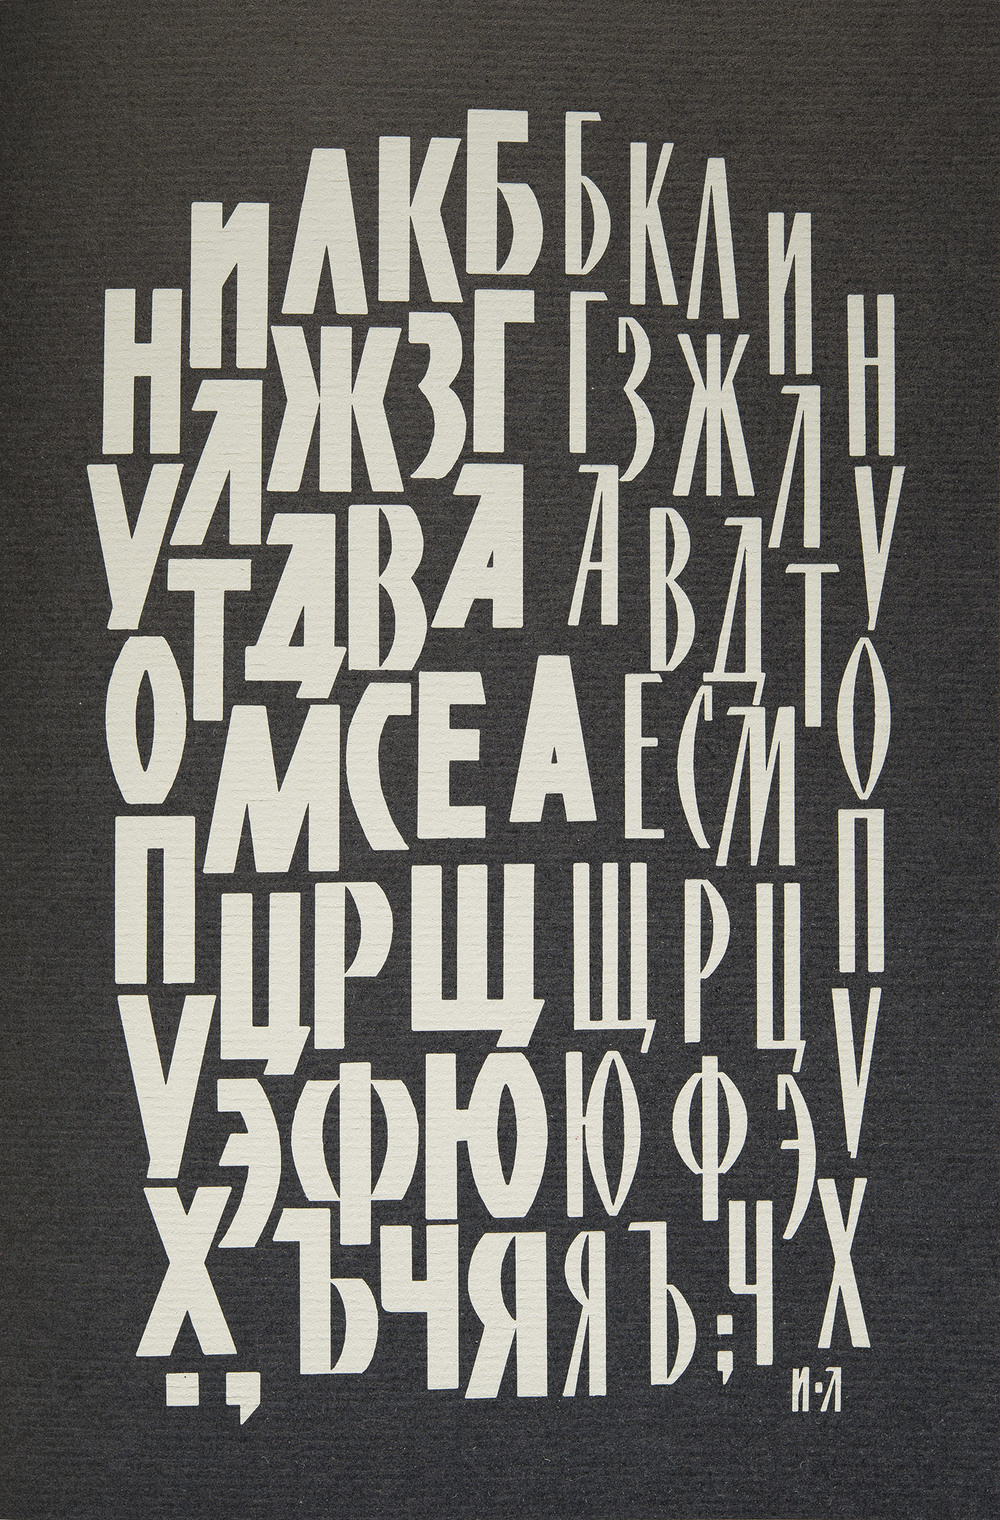 Ivan Andreyevich Litvishko, detail of plate in  The Lettering Art: Works by Moscow Book Designers  by Evgenia Butorina, Kniga, Moscow, 1977, 19.5 x 29.5 cm